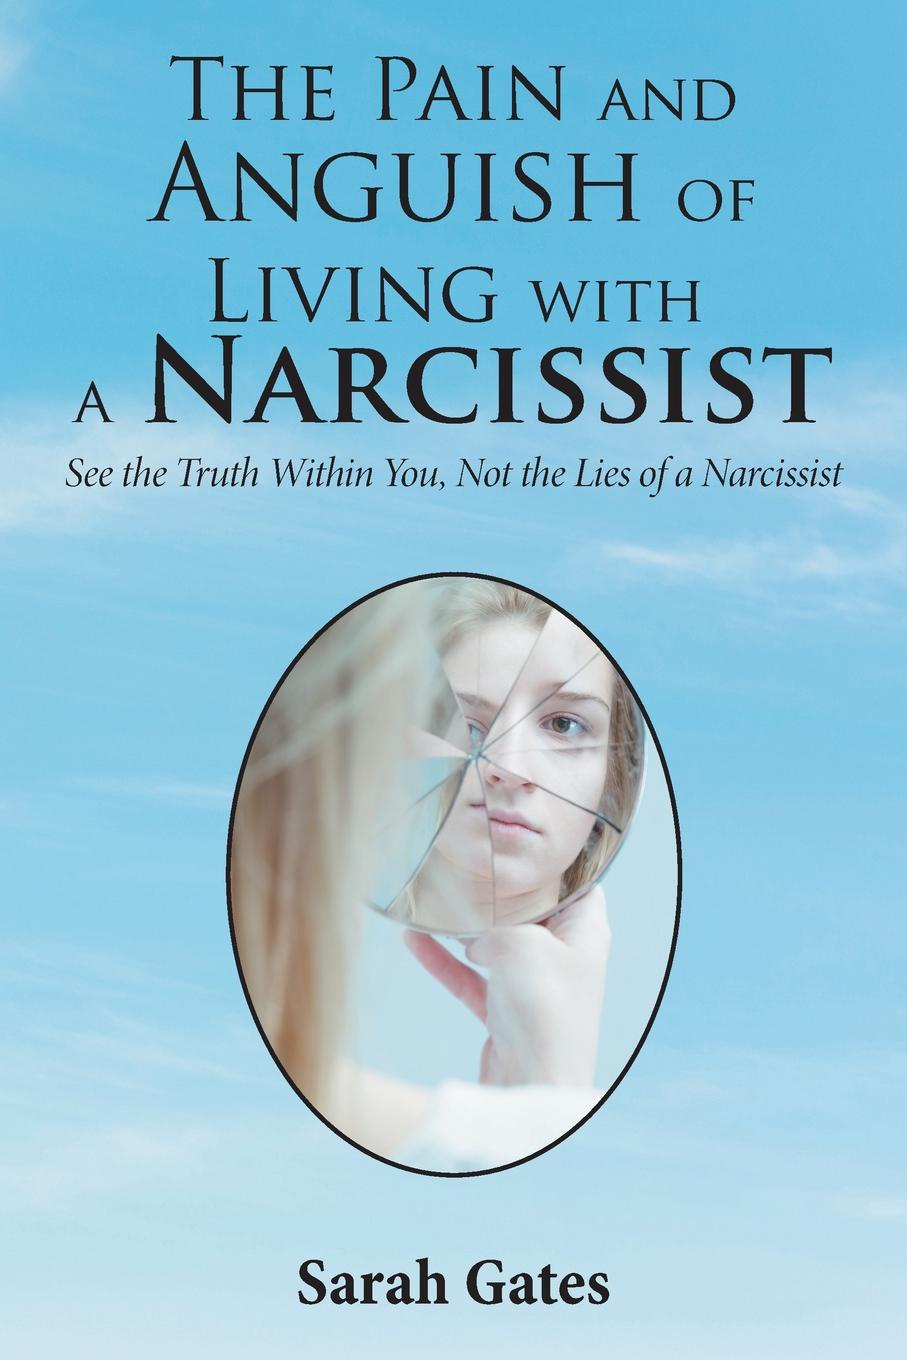 Sarah Gates The Pain and Anguish of Living with a Narcissist. See the Truth Within You, Not the Lies of a Narcissist